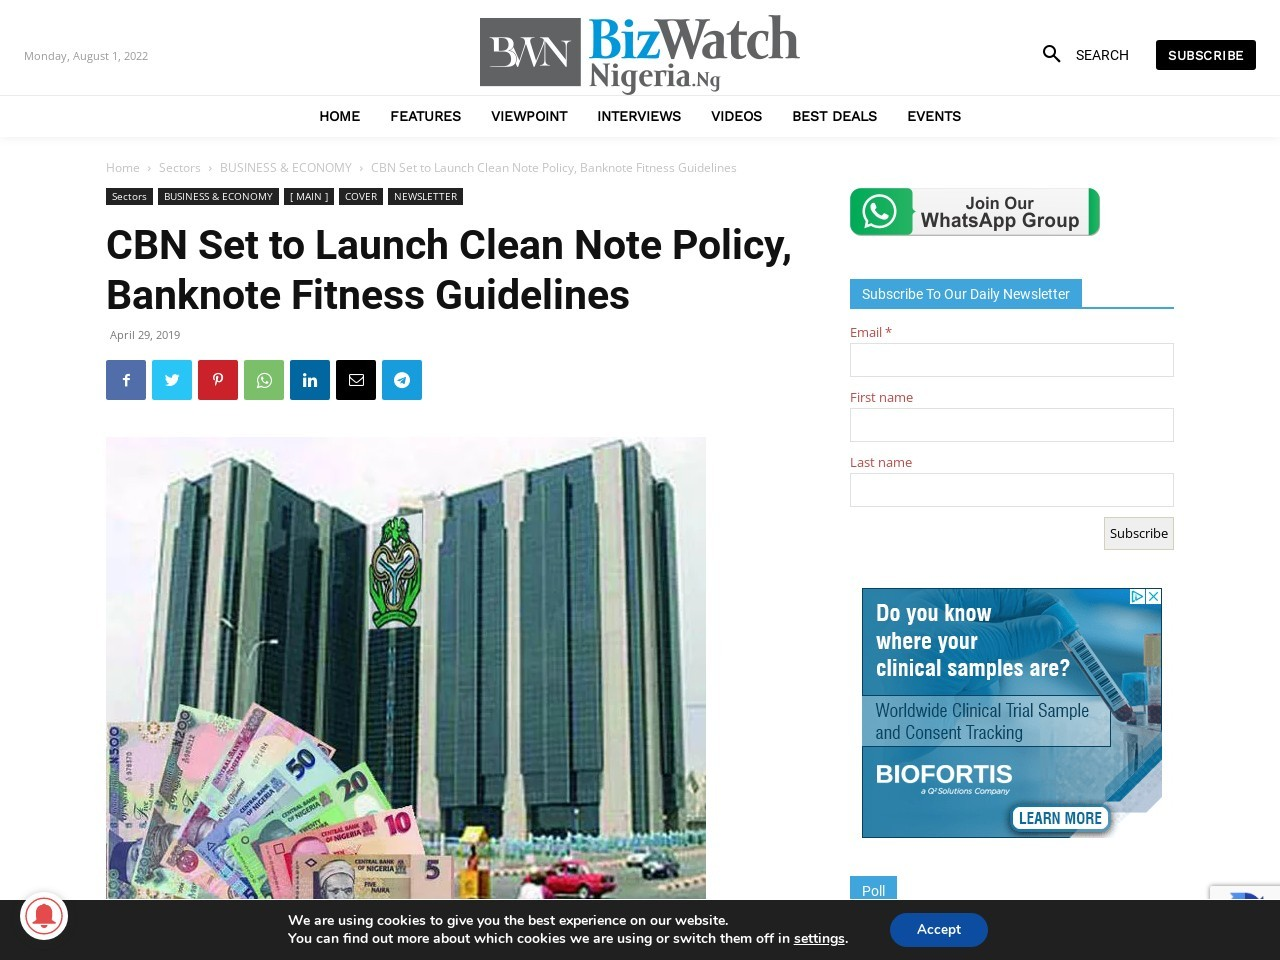 CBN Set to Launch Clean Note Policy, Banknote Fitness Guidelines